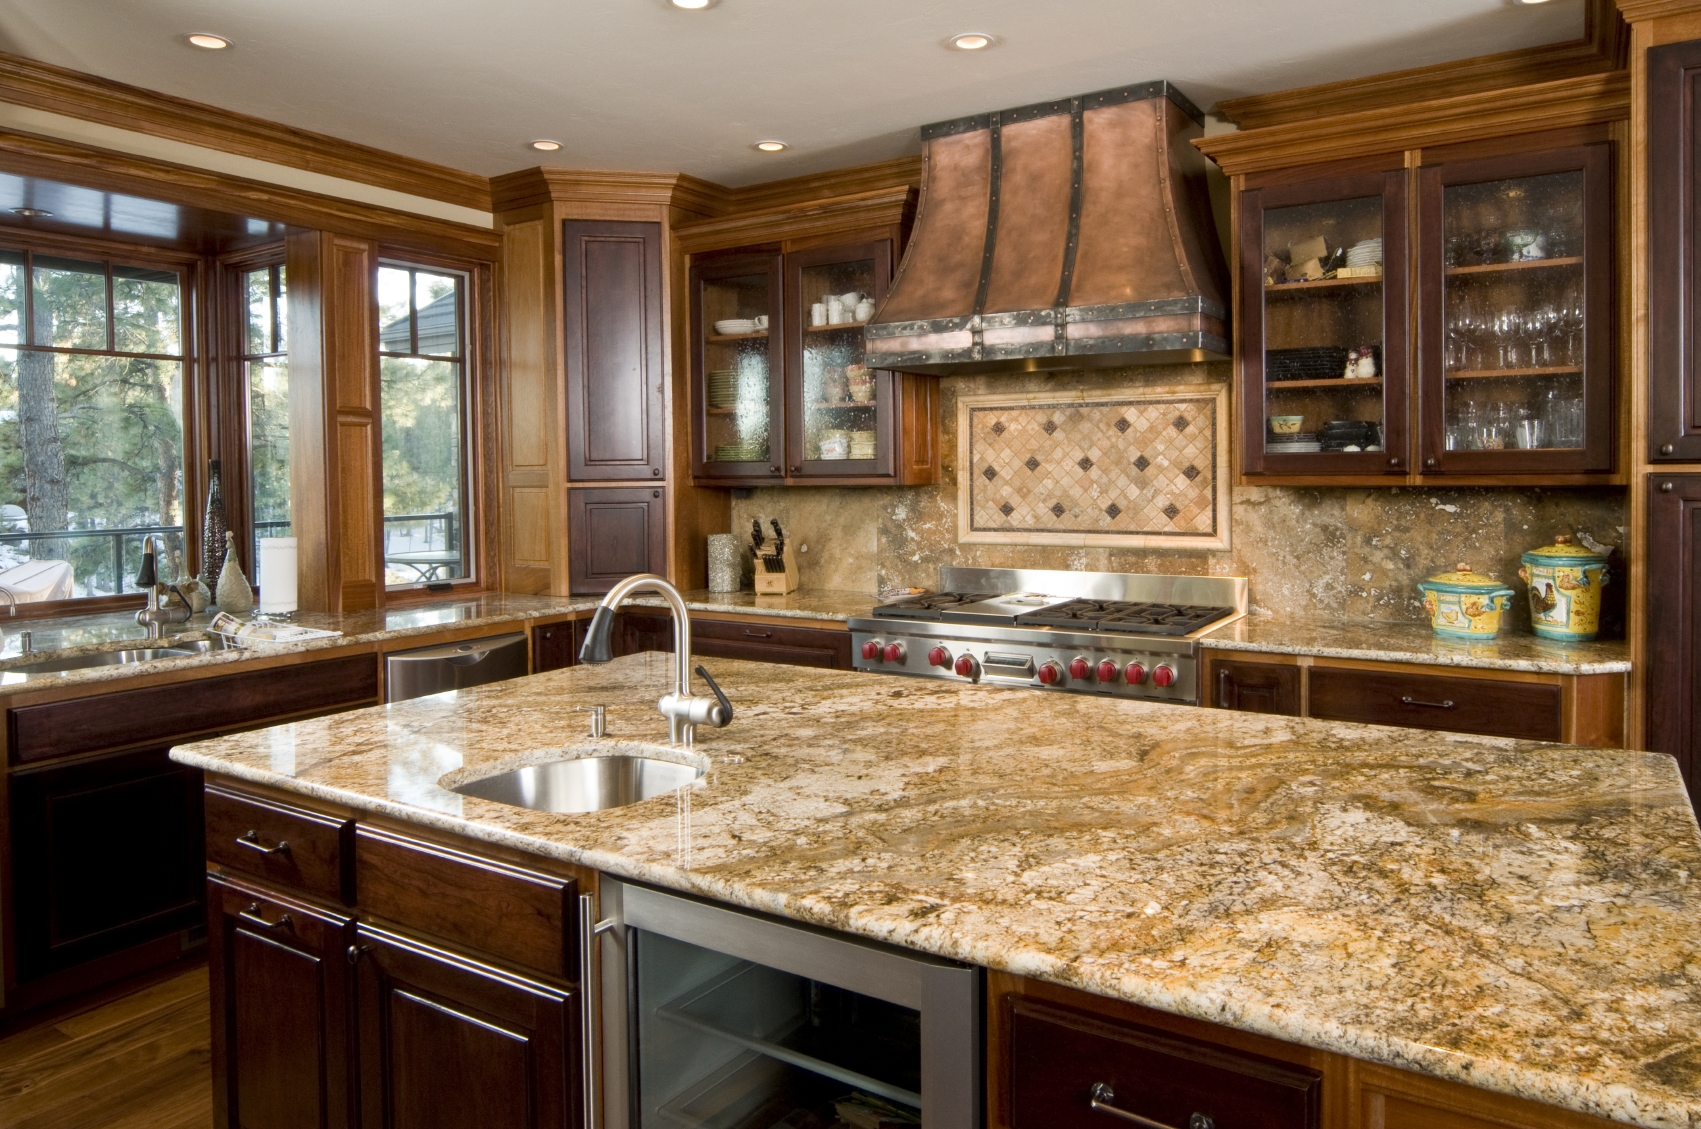 ... toned cabinetry, with mixed color marble countertops and backsplash